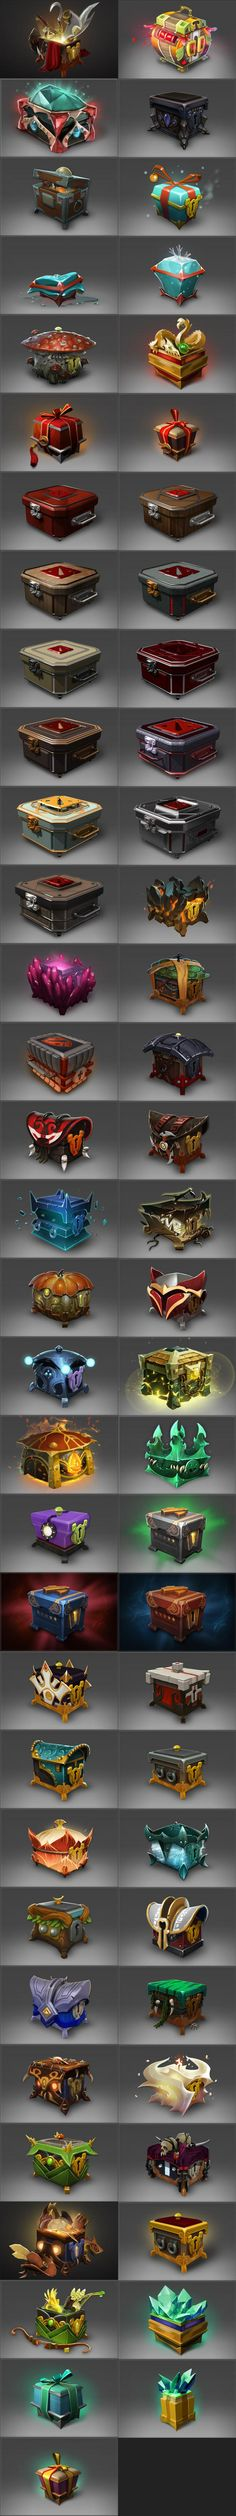 Seven footage into icon Game Ui Design, Prop Design, Dota 2, Zbrush, 2d Game Art, Game Props, Game Interface, Game Concept Art, Game Icon